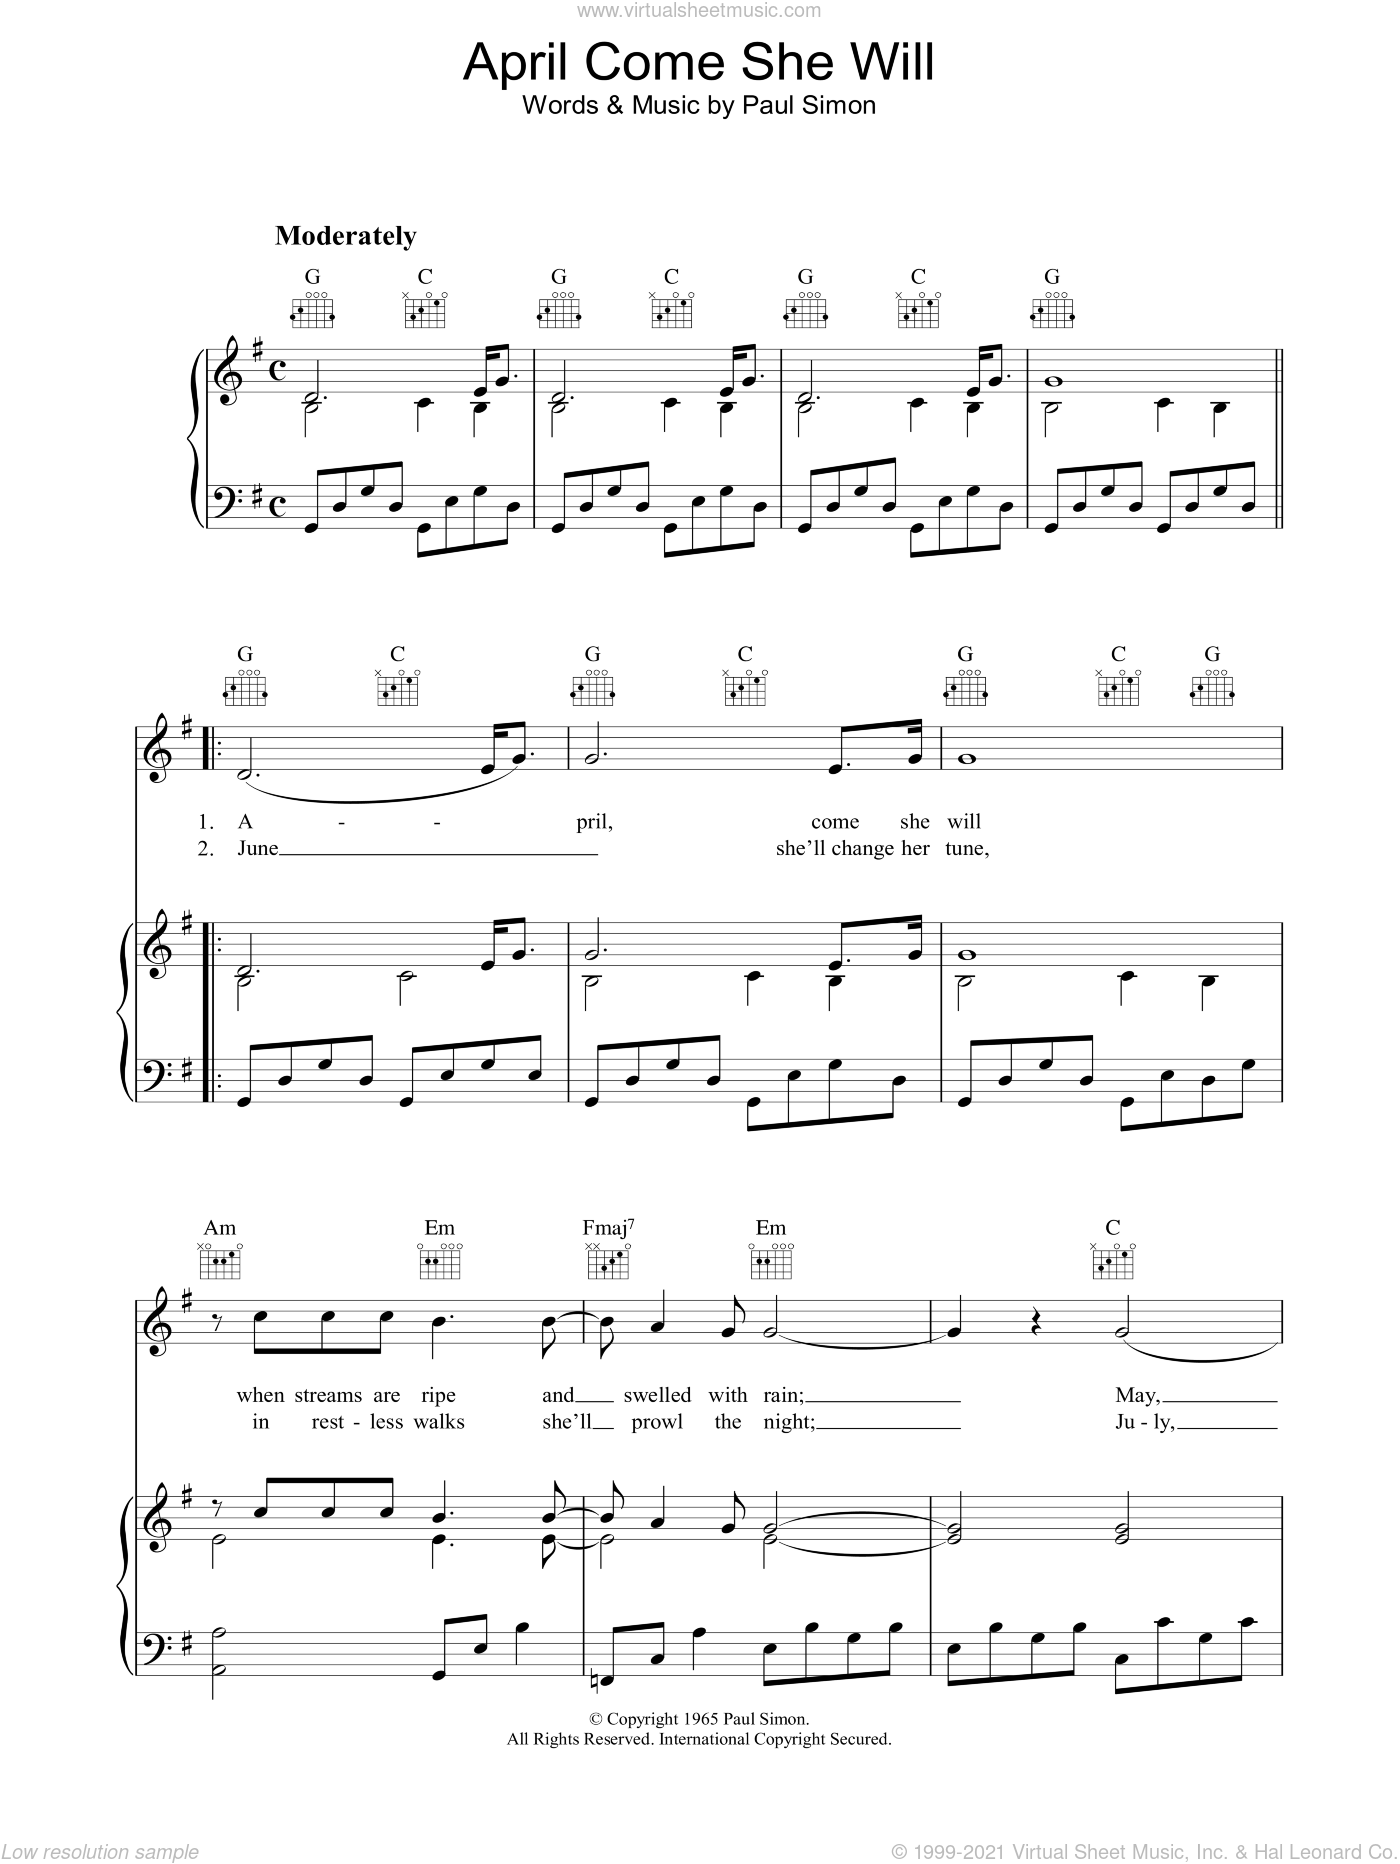 Garfunkel - April Come She Will sheet music for voice, piano or guitar